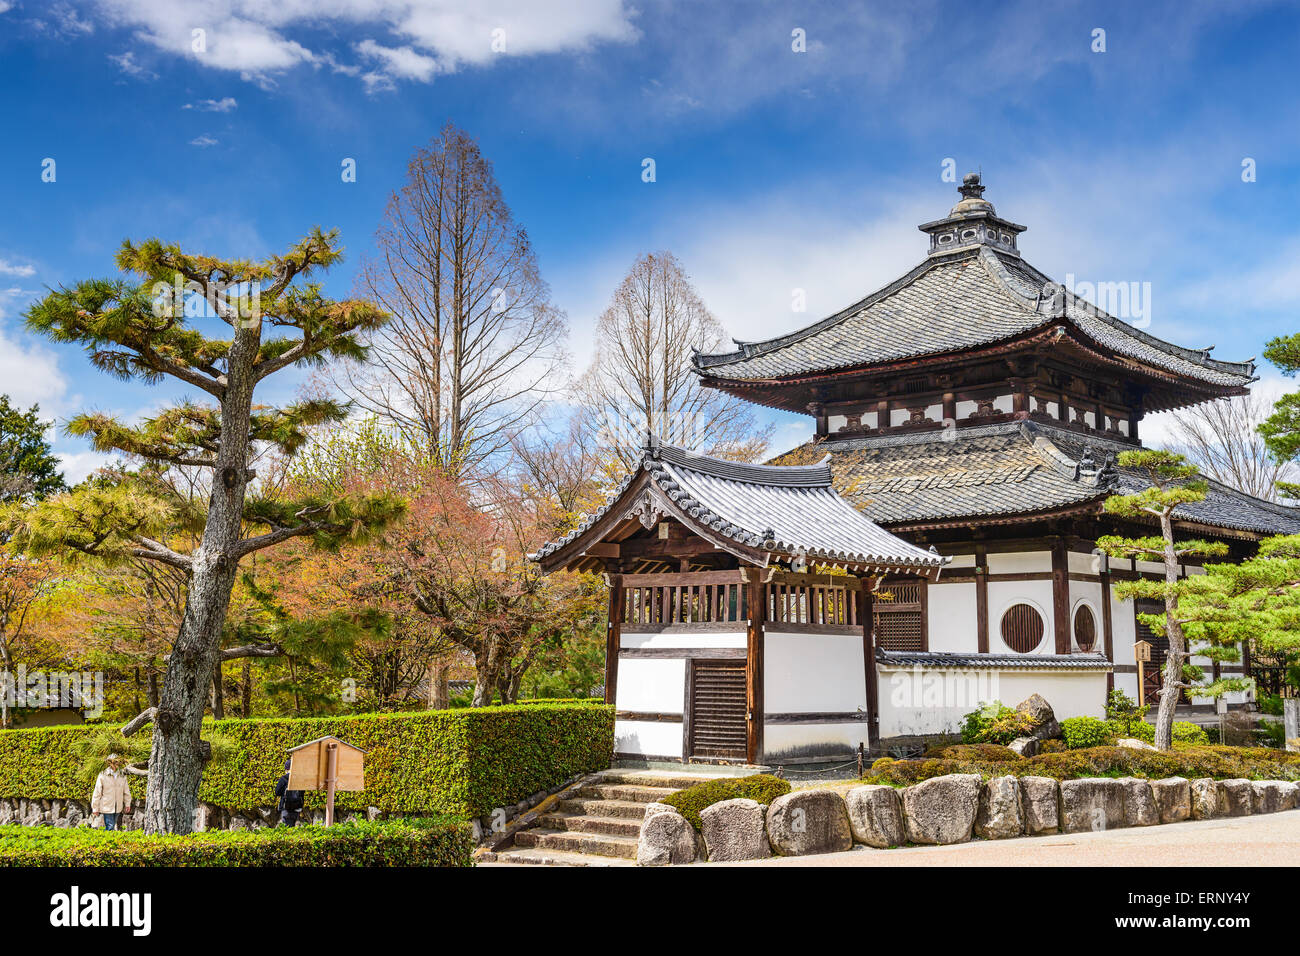 Kyoto, Japan buildings on the grounds of Tofuku-ji Temple. - Stock Image